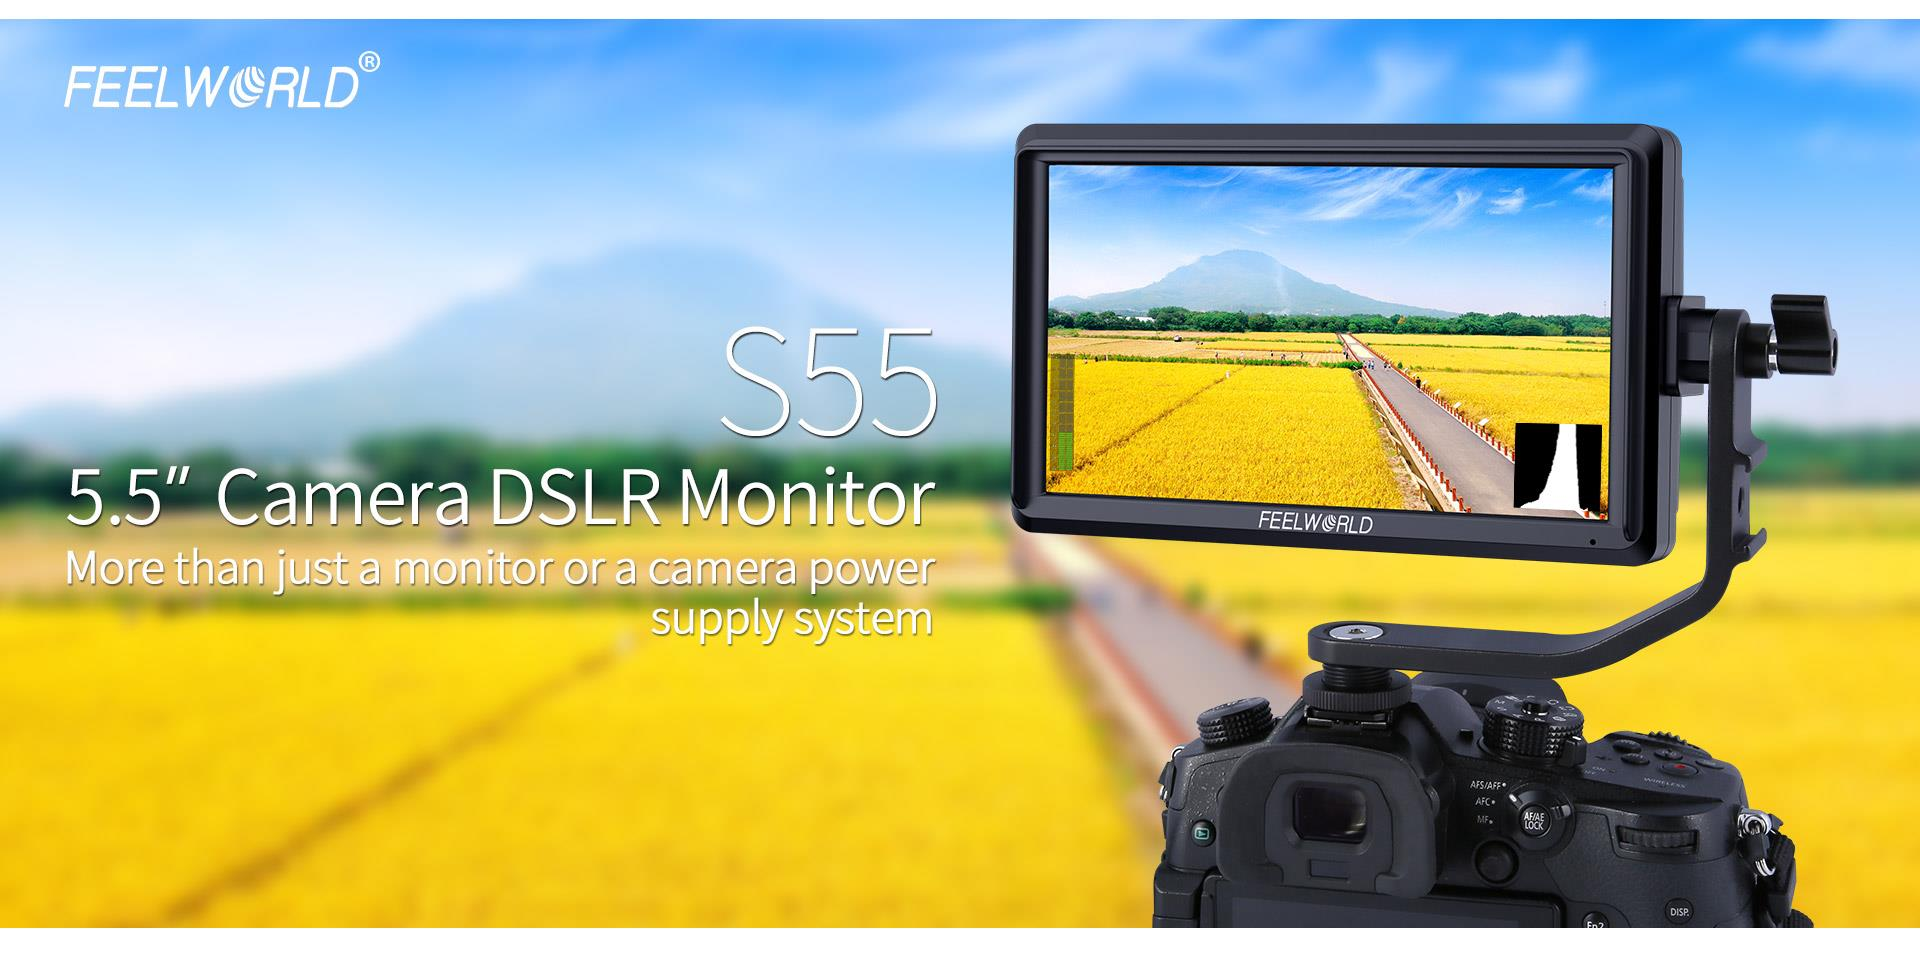 small-hd-501-monitor